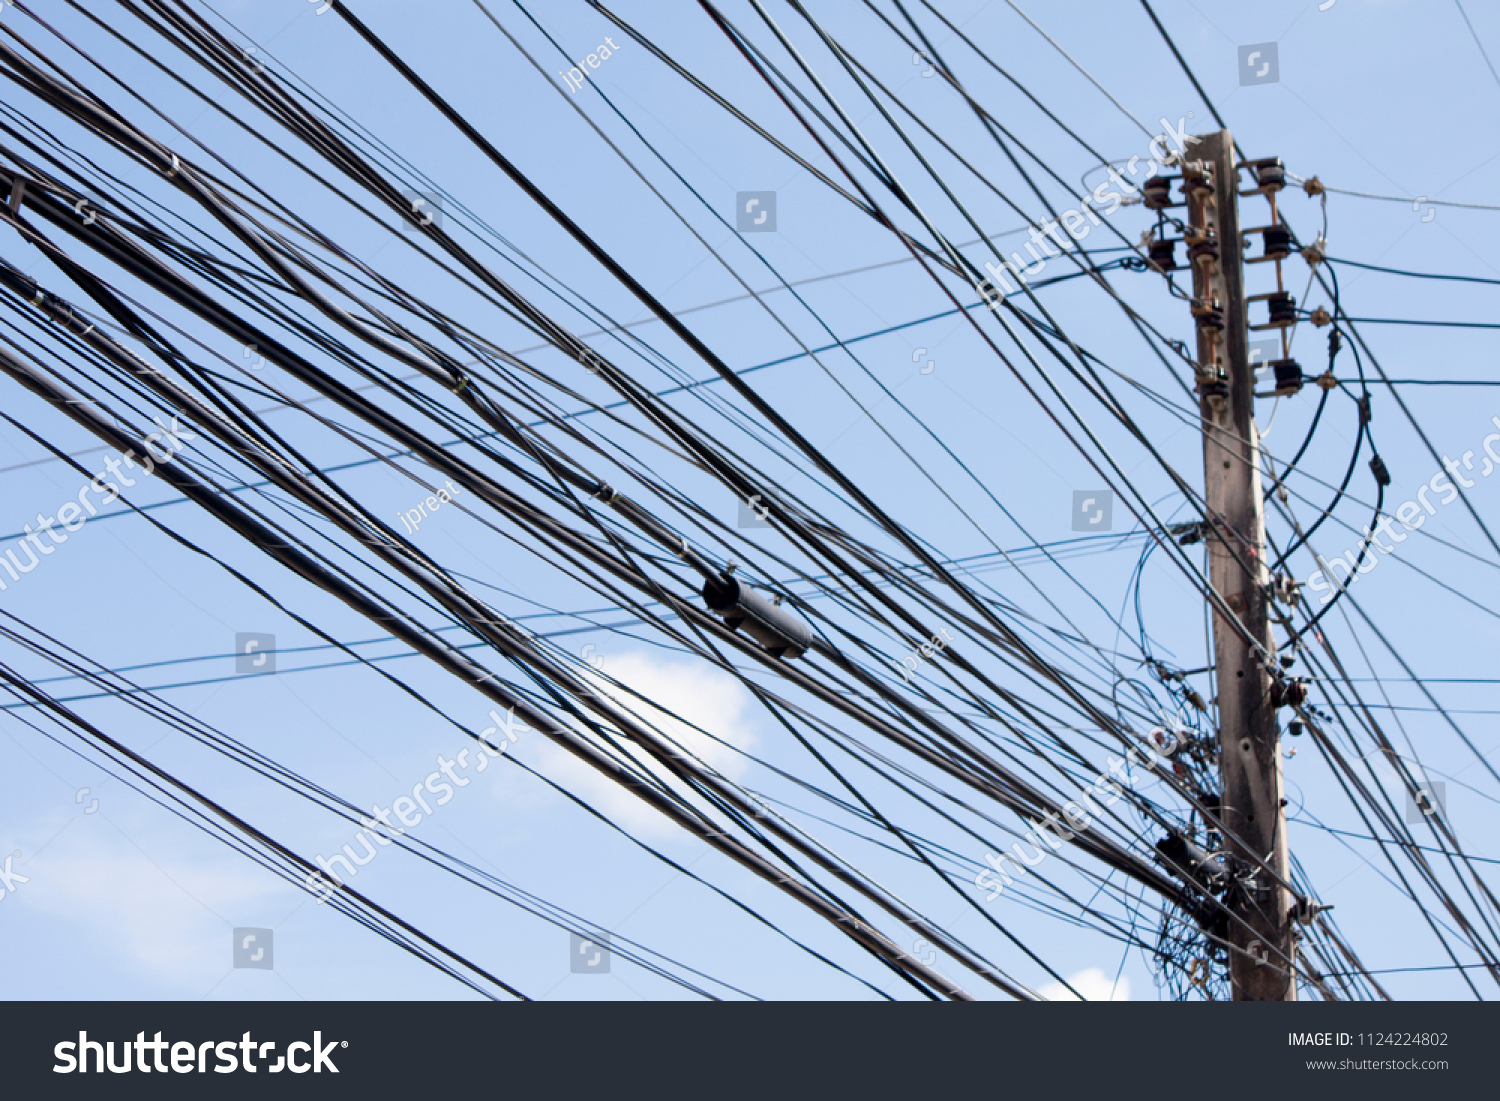 Electrical Wires On Power Poles Made Stock Photo (Royalty Free ...